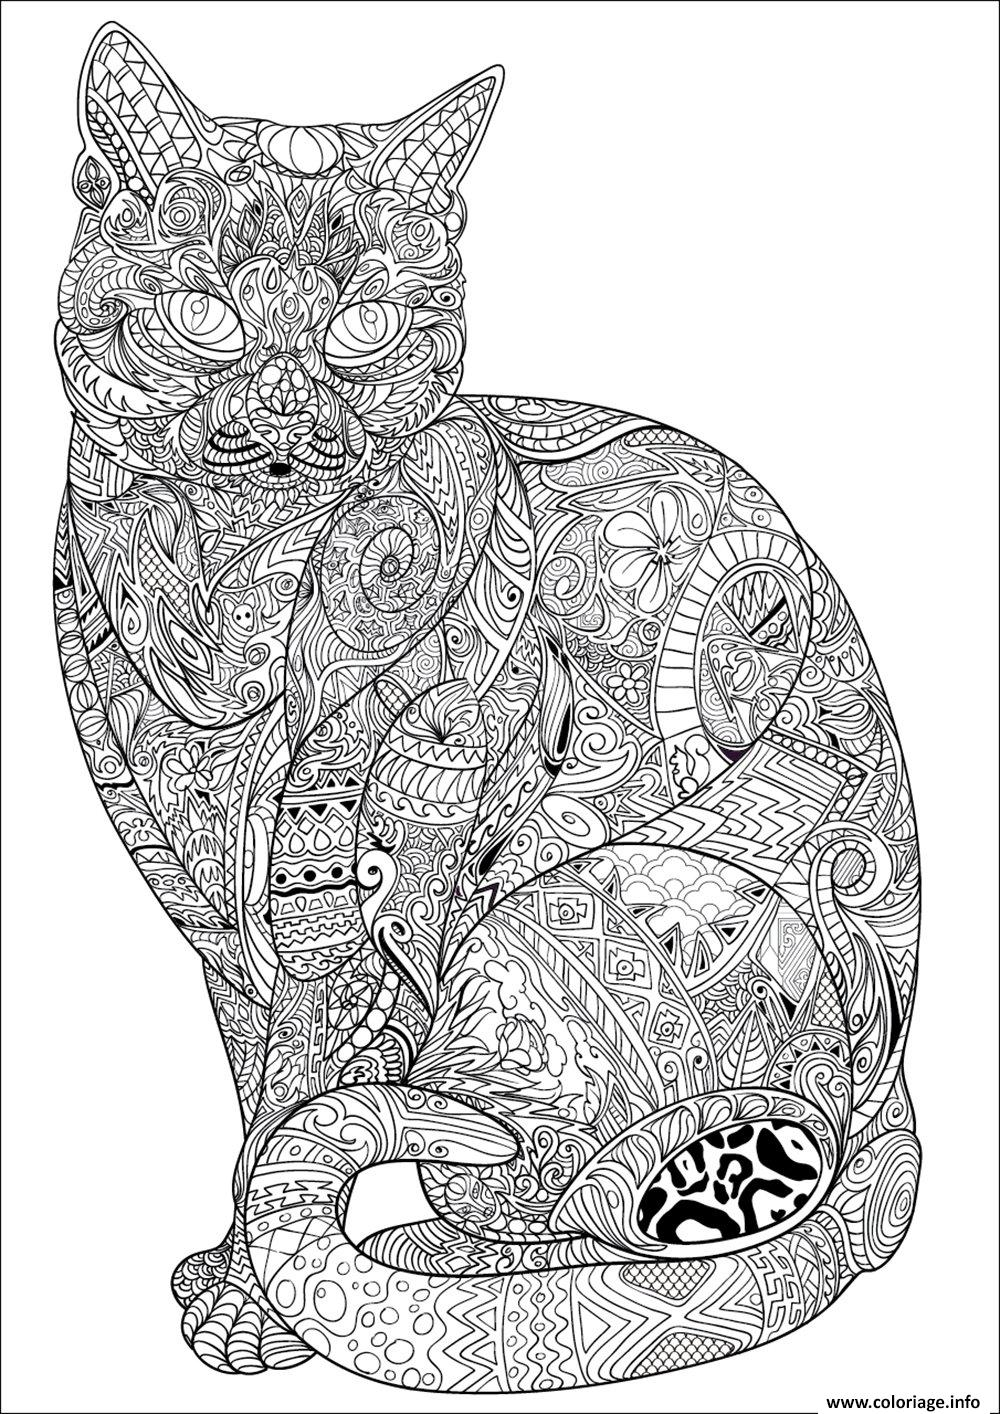 Coloriage chat adulte difficile antistress animaux - Dessins anti stress ...